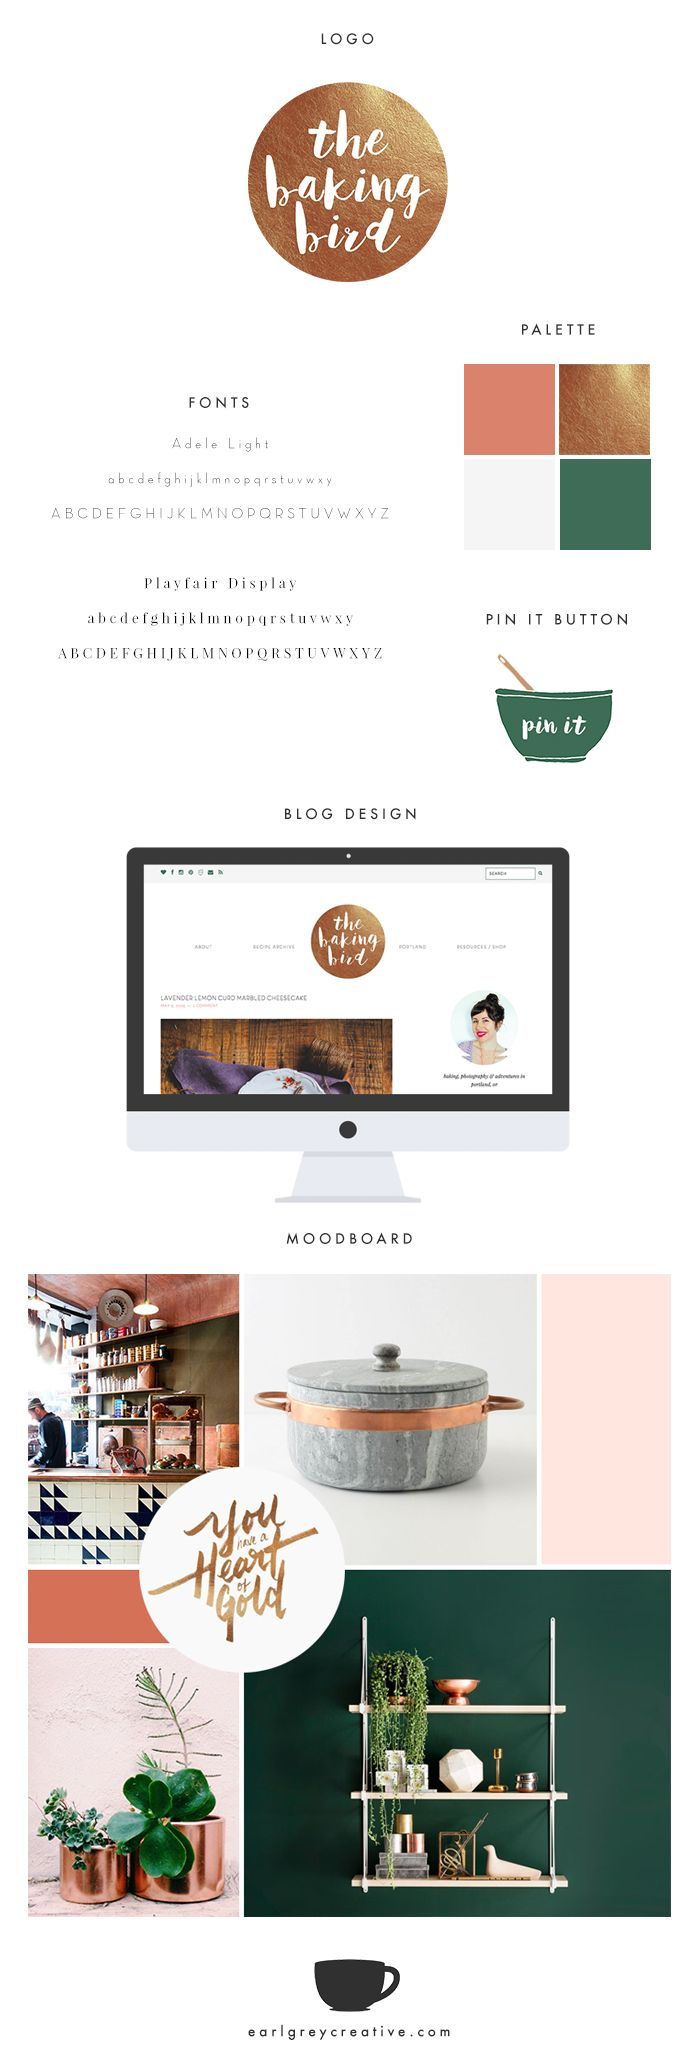 brand style guide template psd